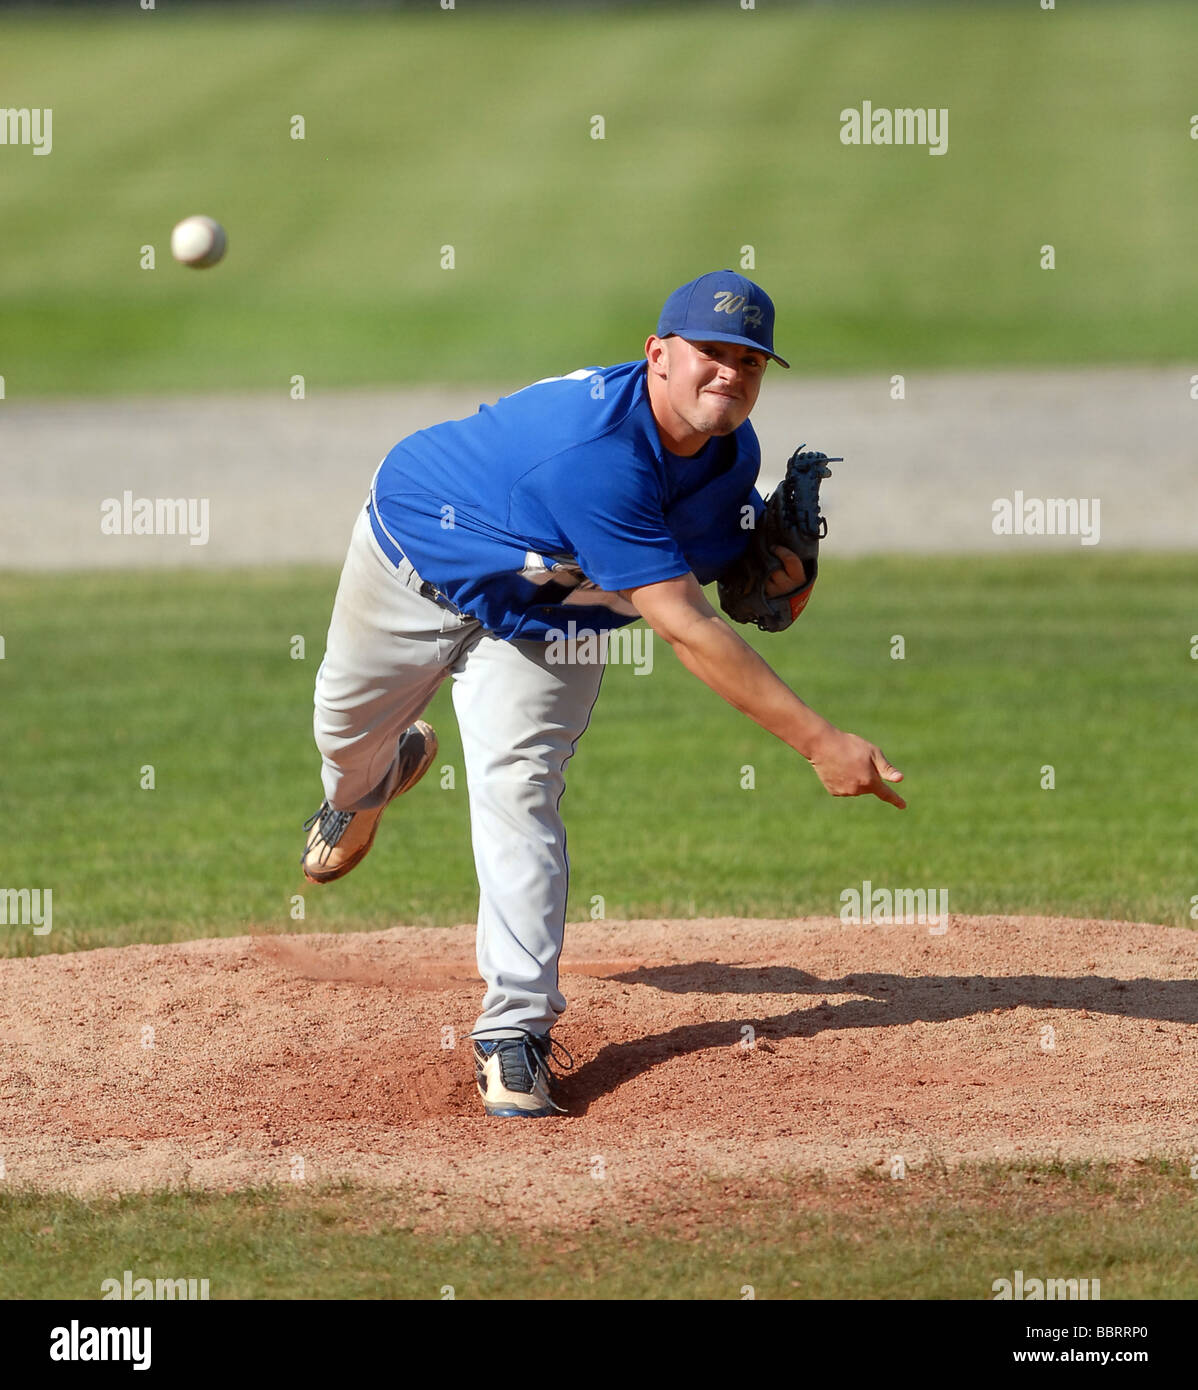 High school pitcher throwing ball during State Championship baseball game in CT USA - Stock Image